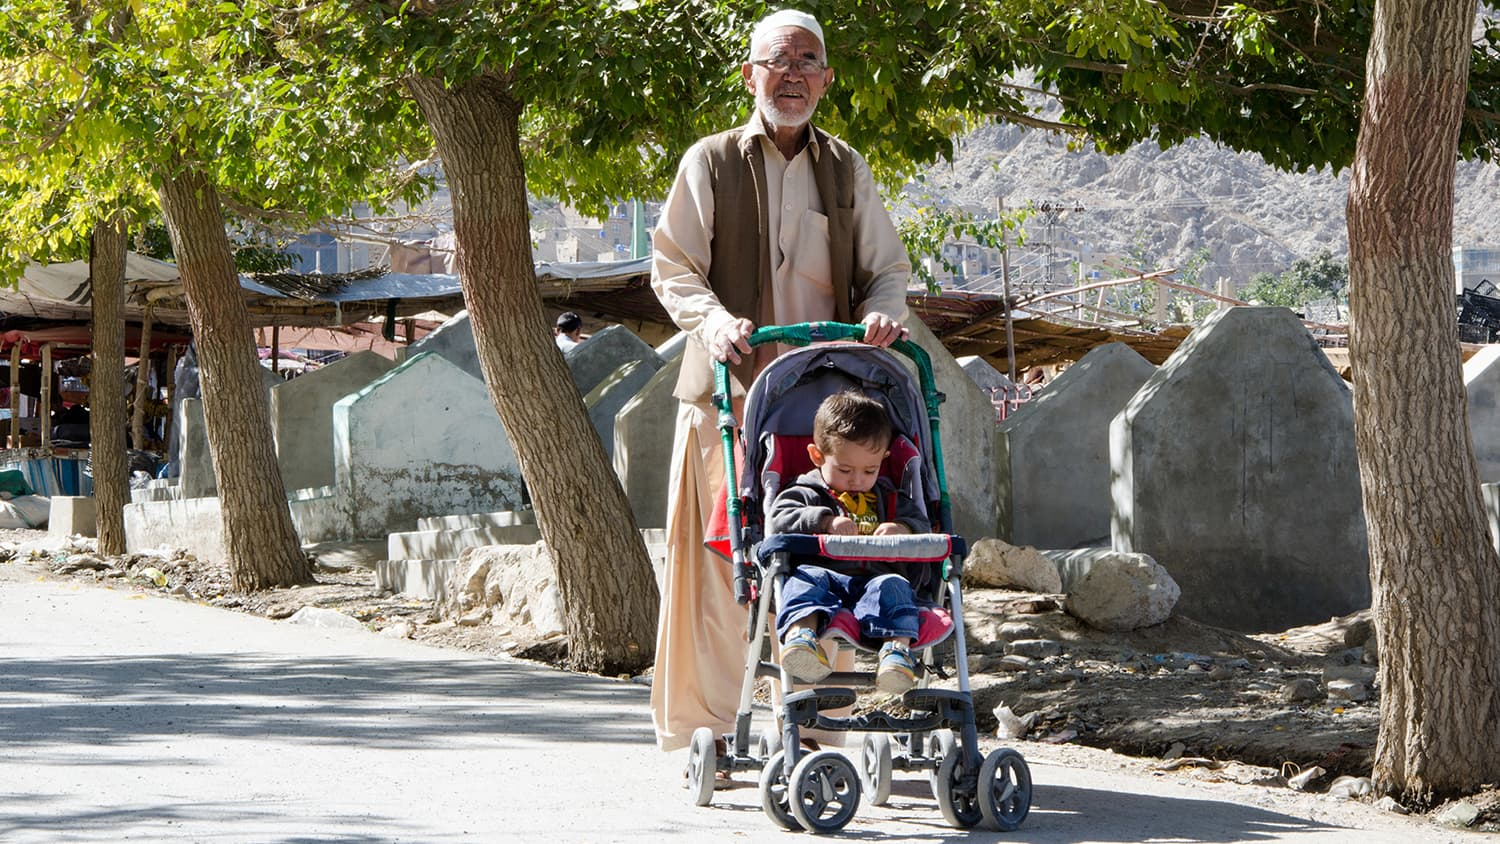 An old man out with his grandson for some fresh air.